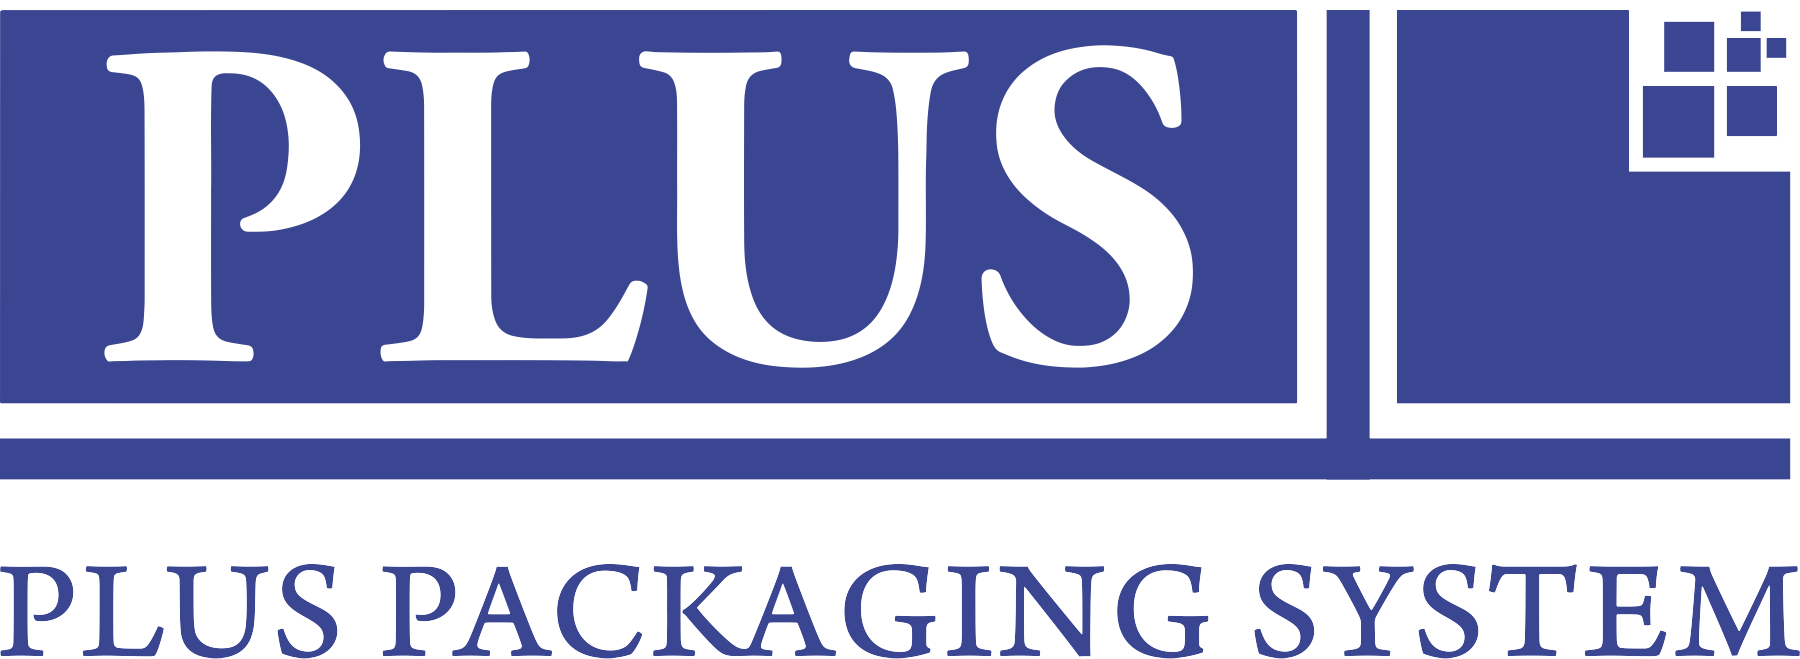 Plus Packaging System